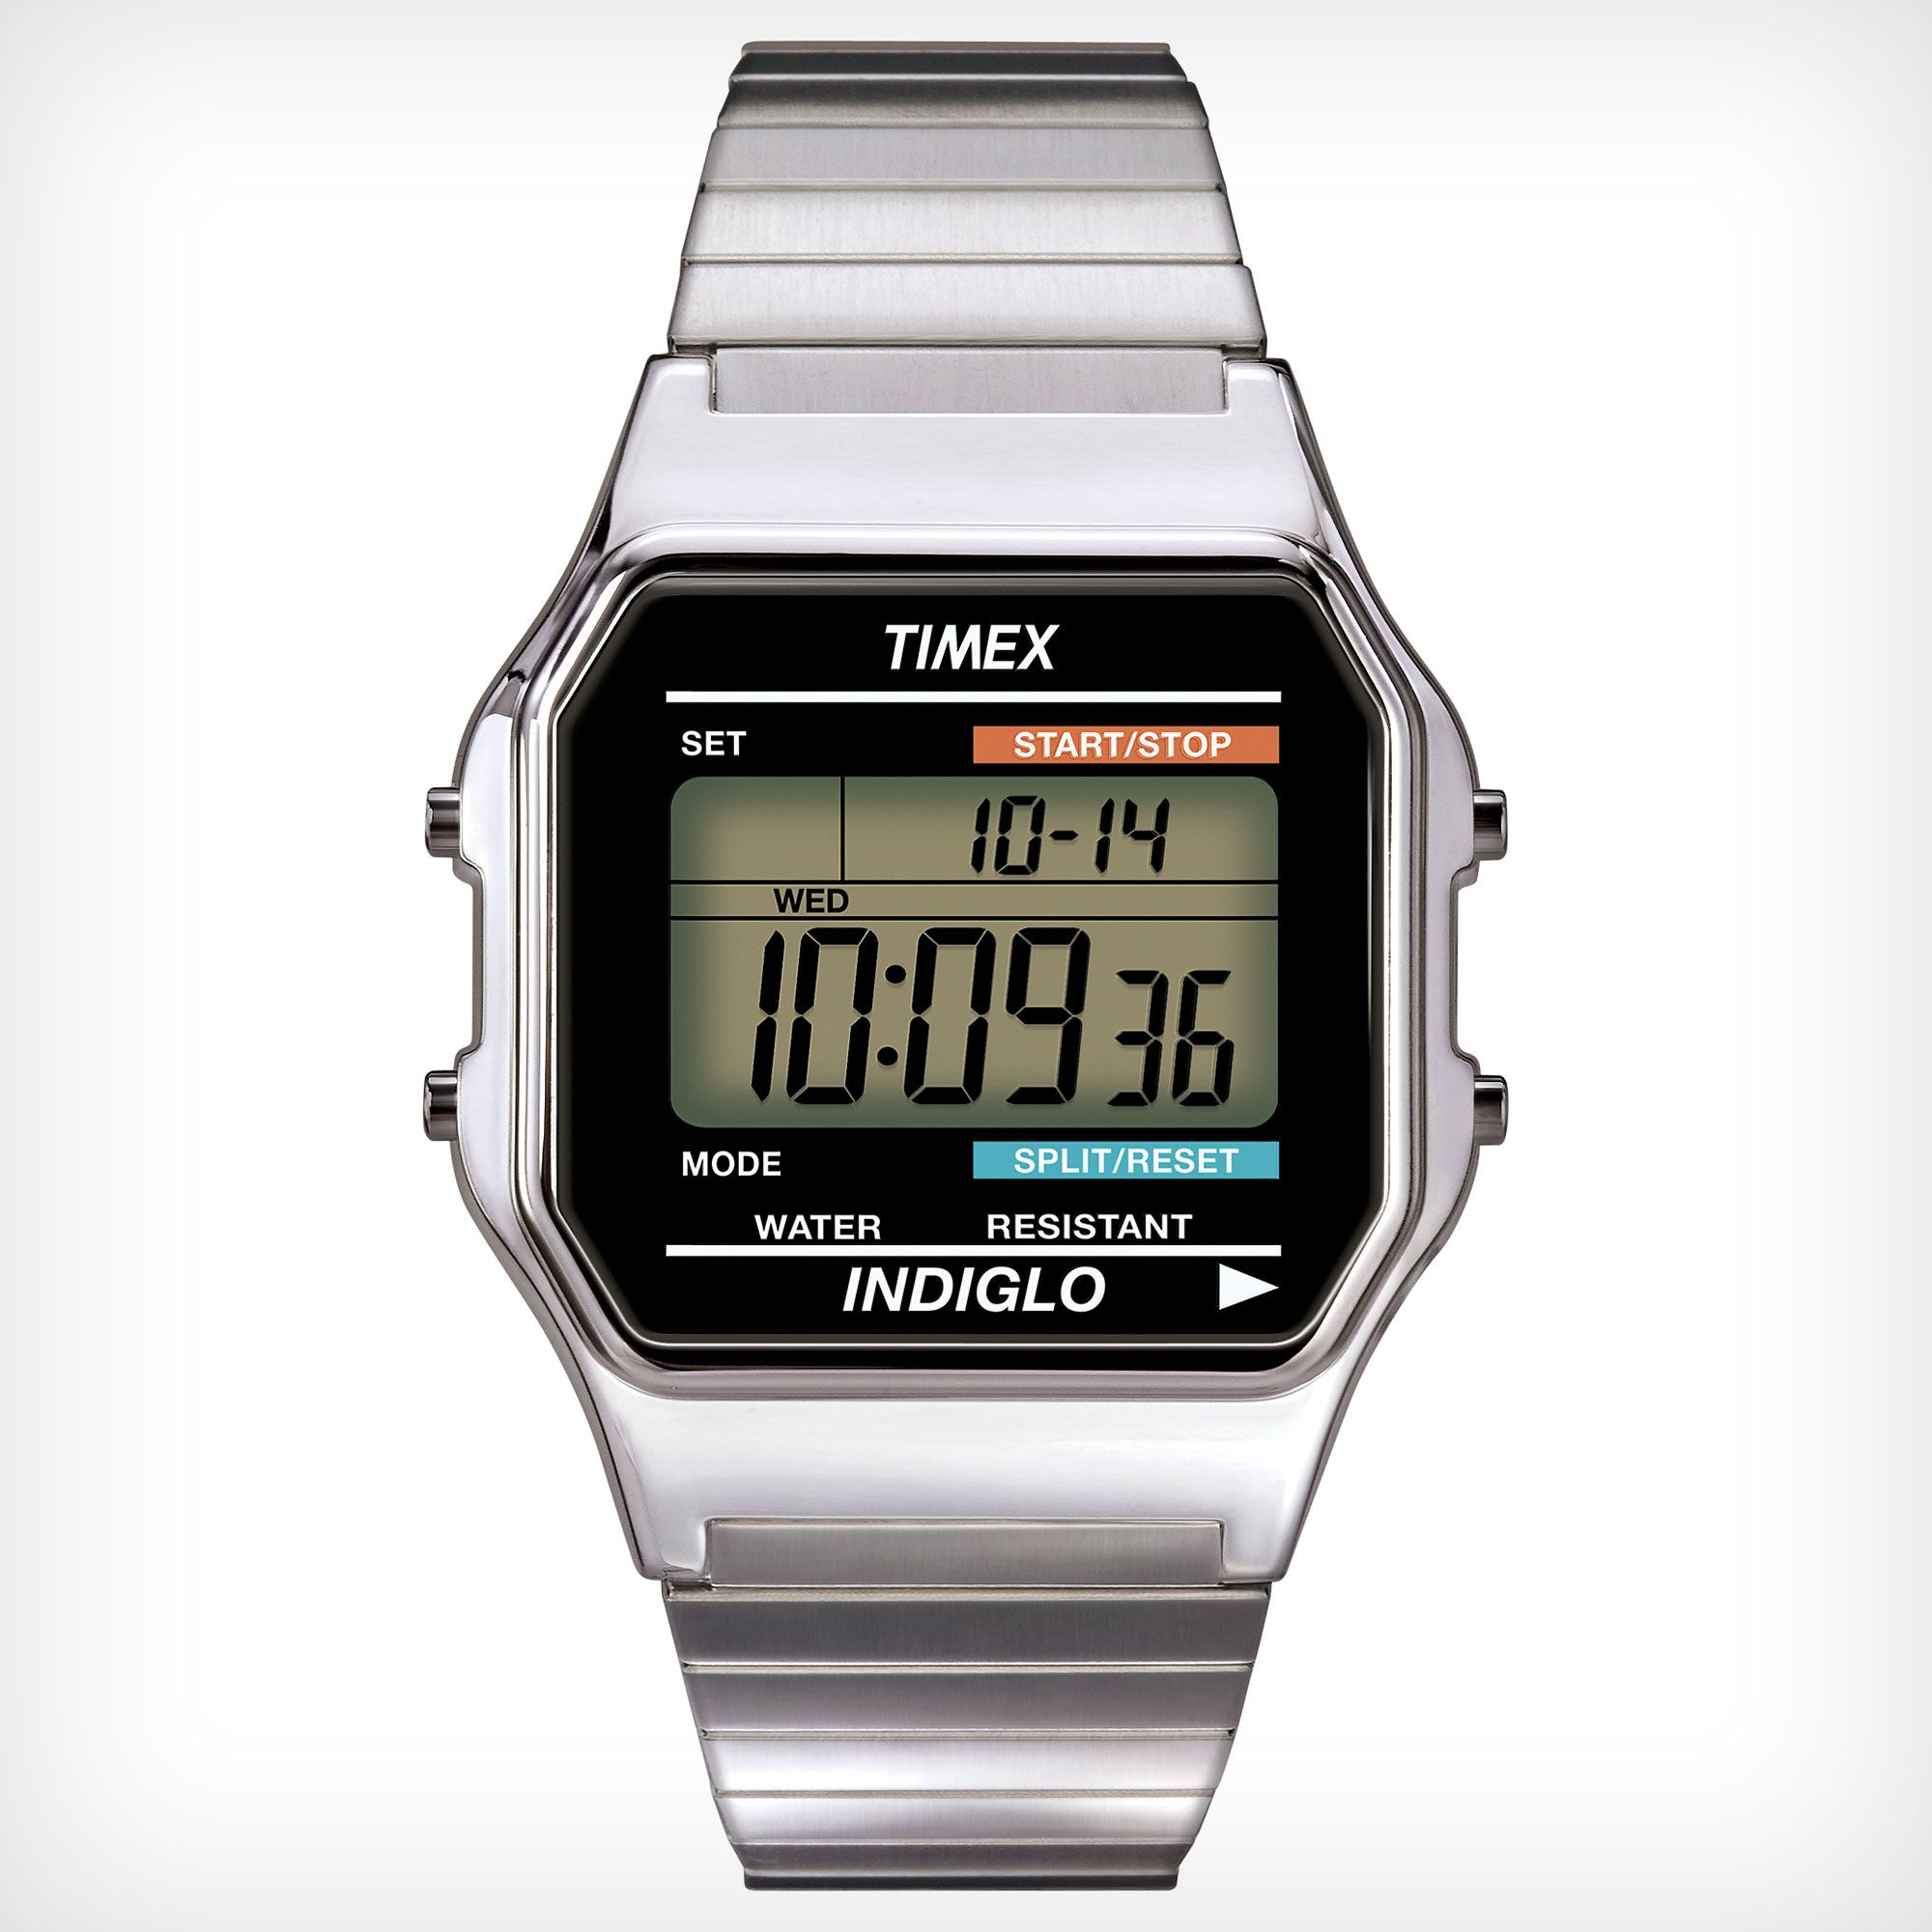 Timex Digital Timex Timex Uhren Digitaluhr Armbanduhr Digital